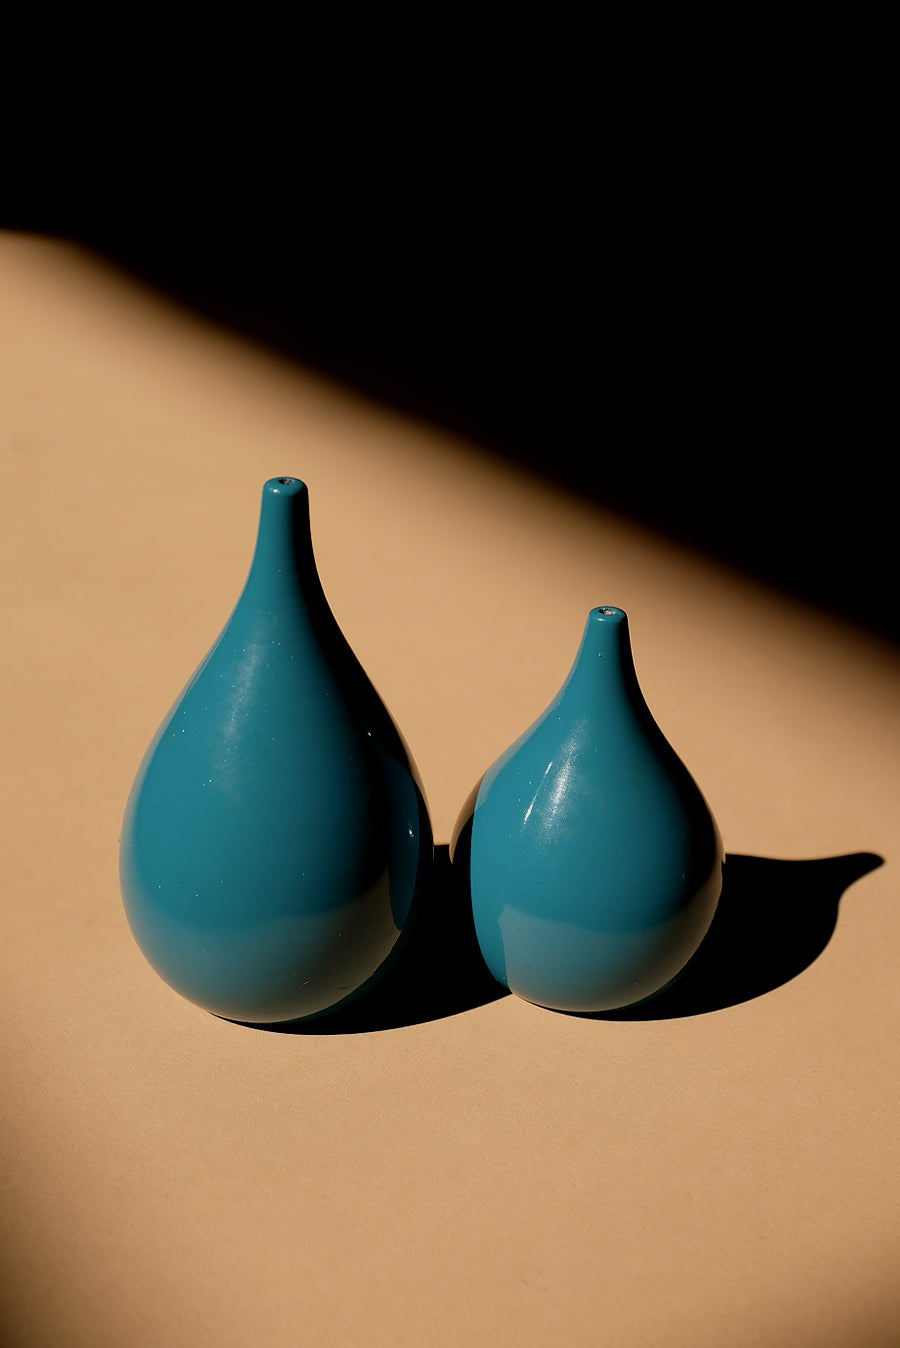 Image of Vintage Teardrop Salt and Pepper Set